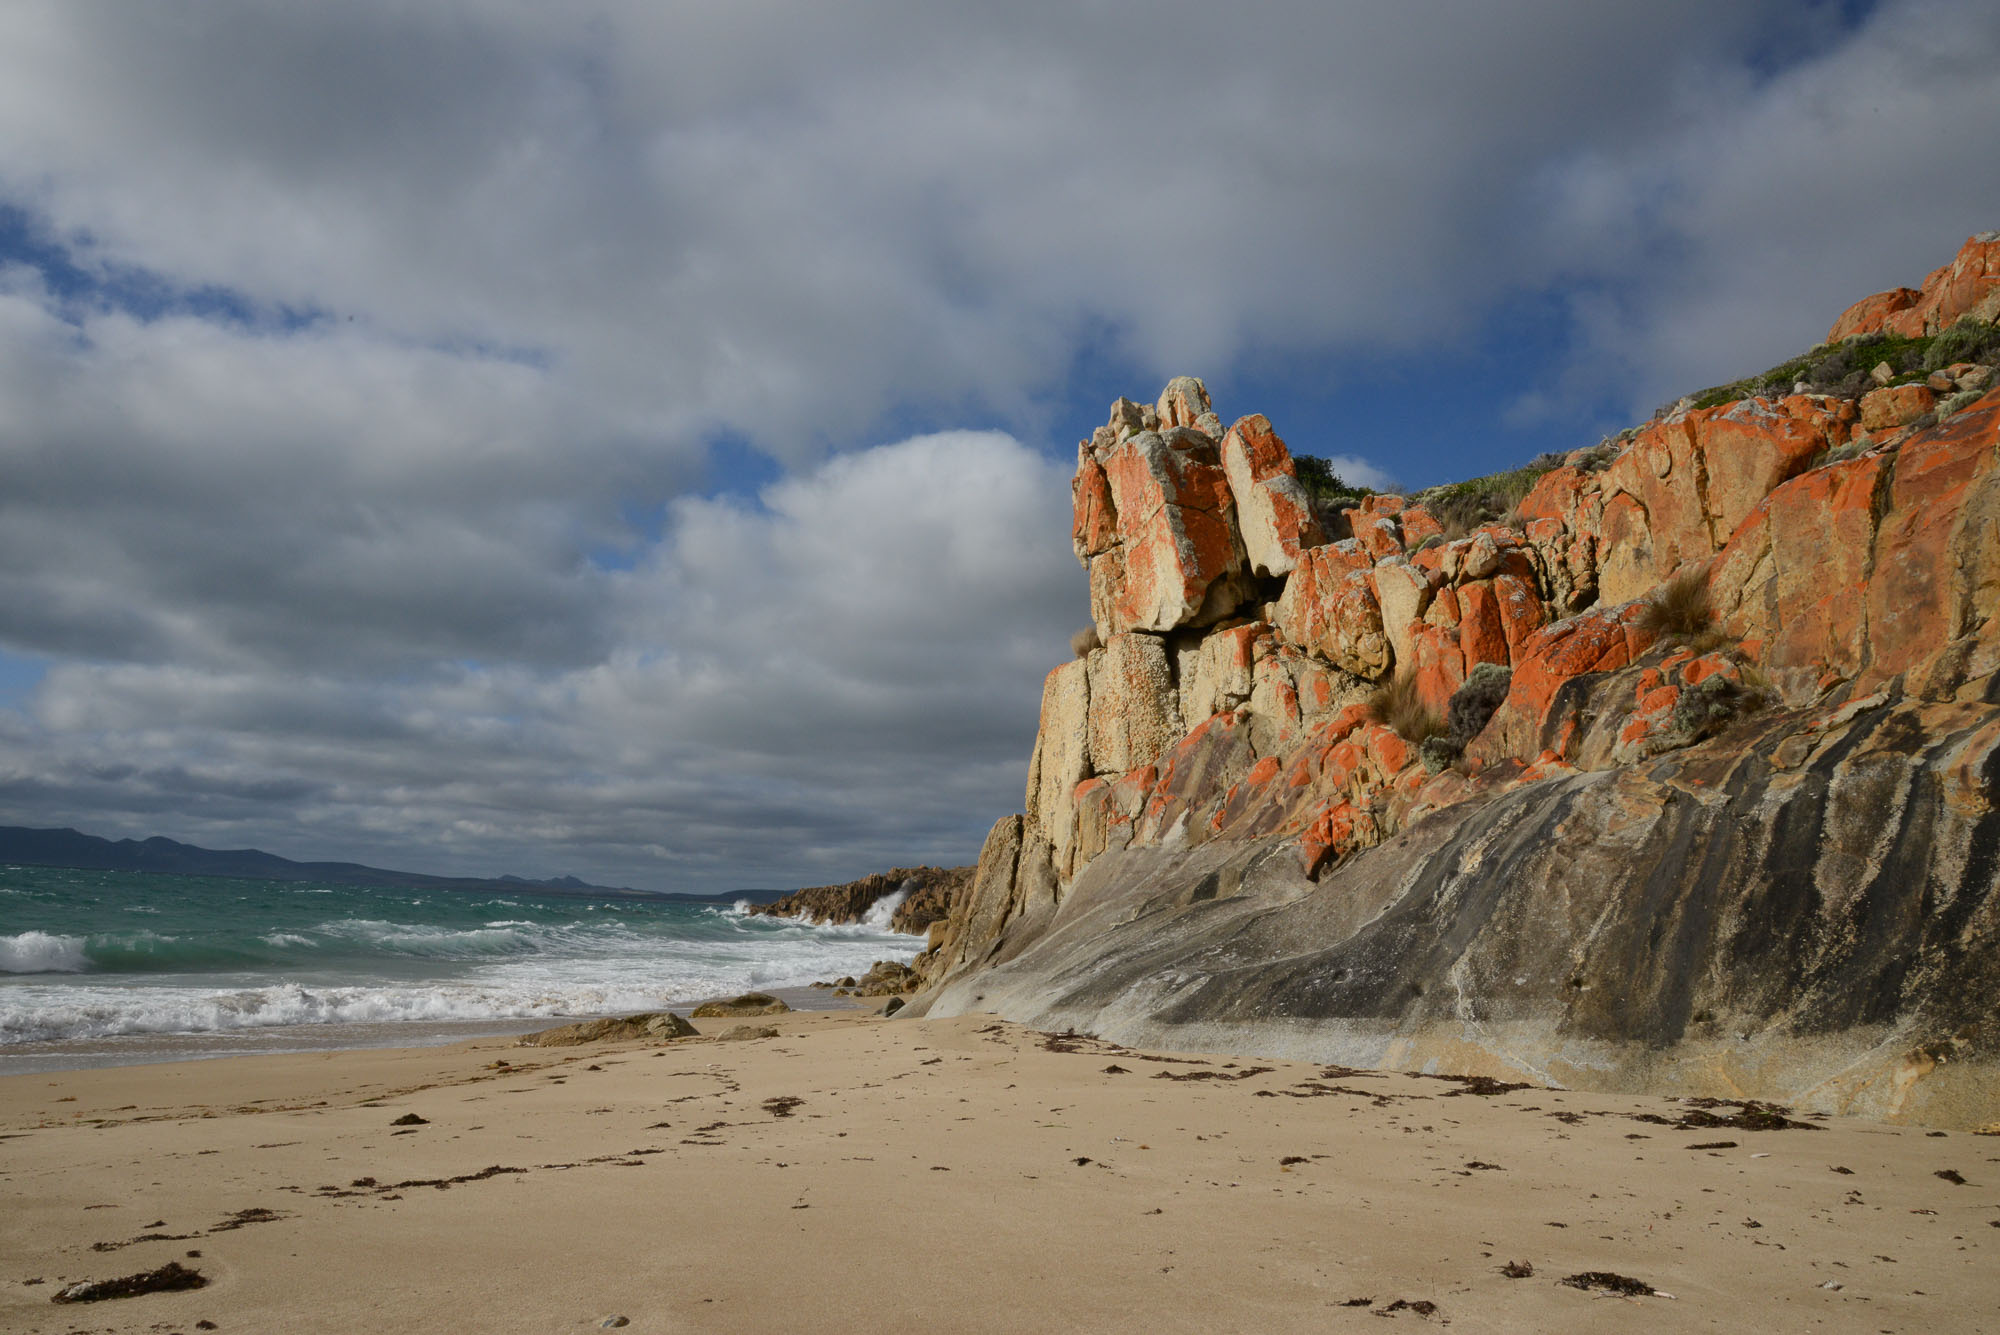 Rocks on the beach on Flinders Island.